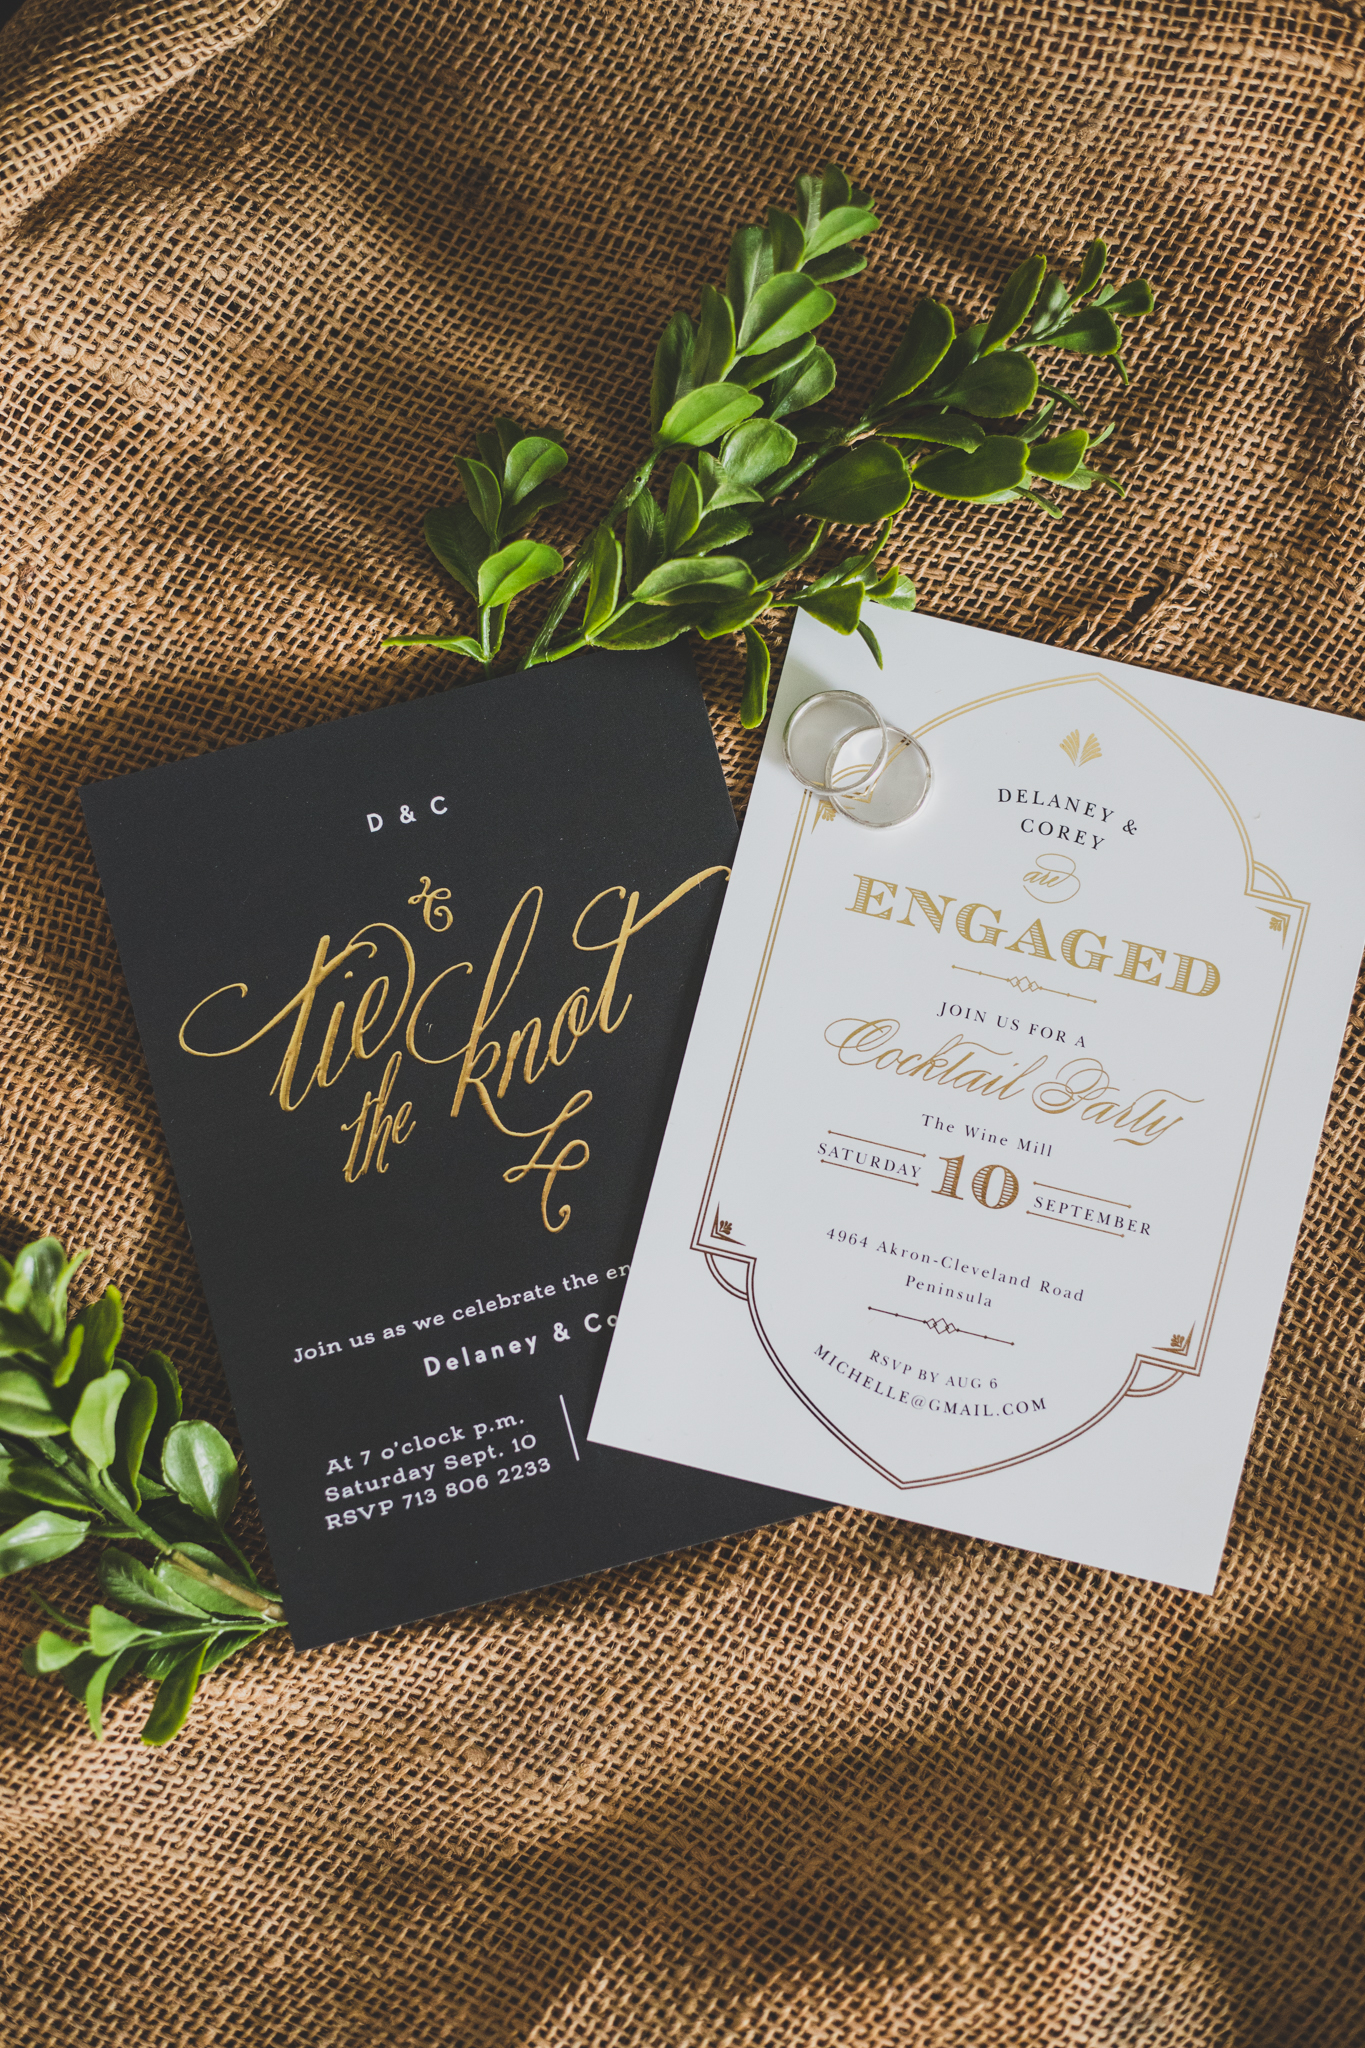 These two invitations feature gold foil detailing which my clients just love!